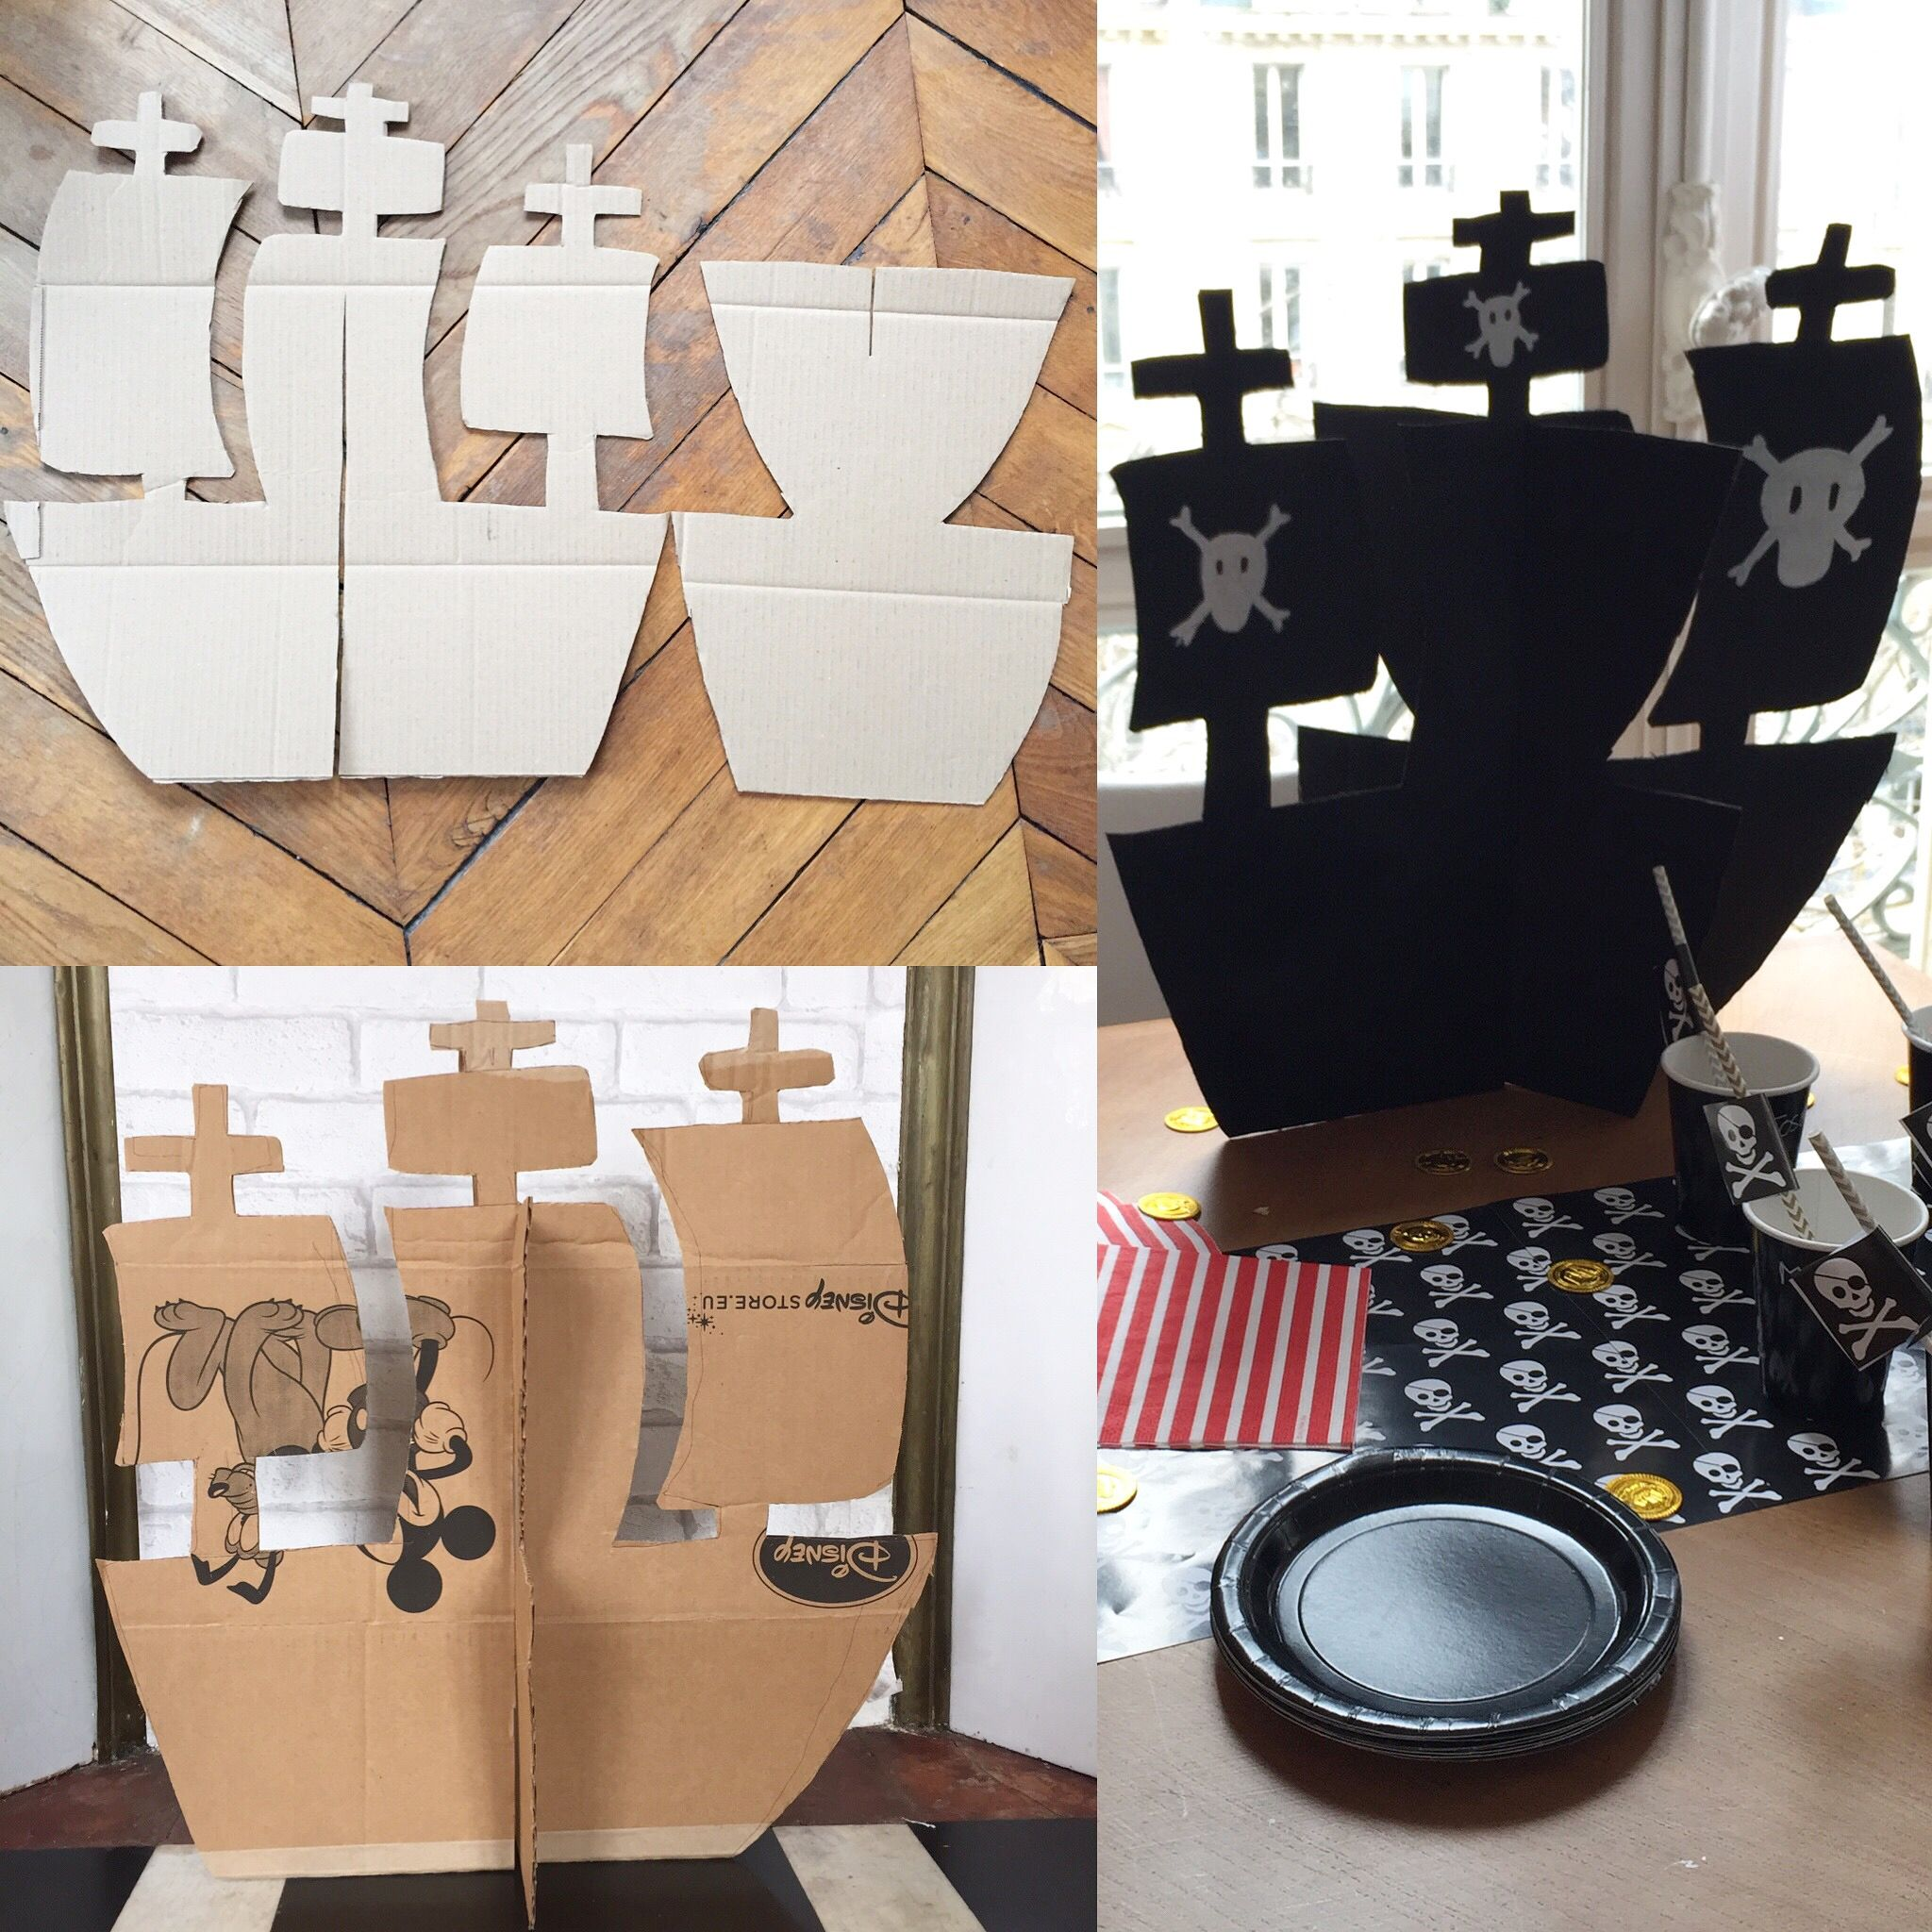 tuto bateau pirate birthday party pinterest. Black Bedroom Furniture Sets. Home Design Ideas